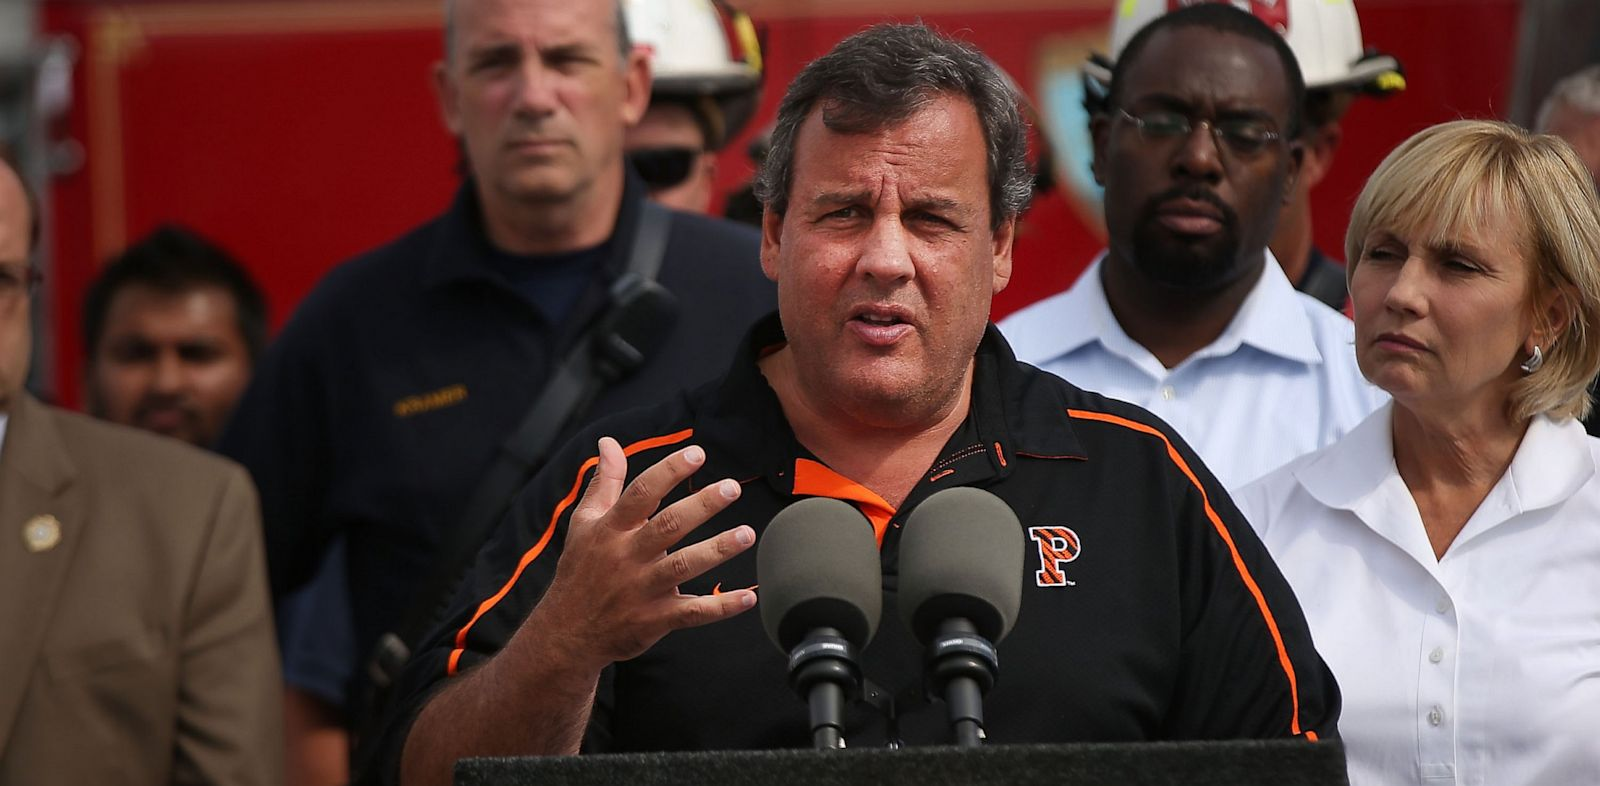 PHOTO: New Jersey Gov. Chris Christie speaks at Jersey shore boardwalk